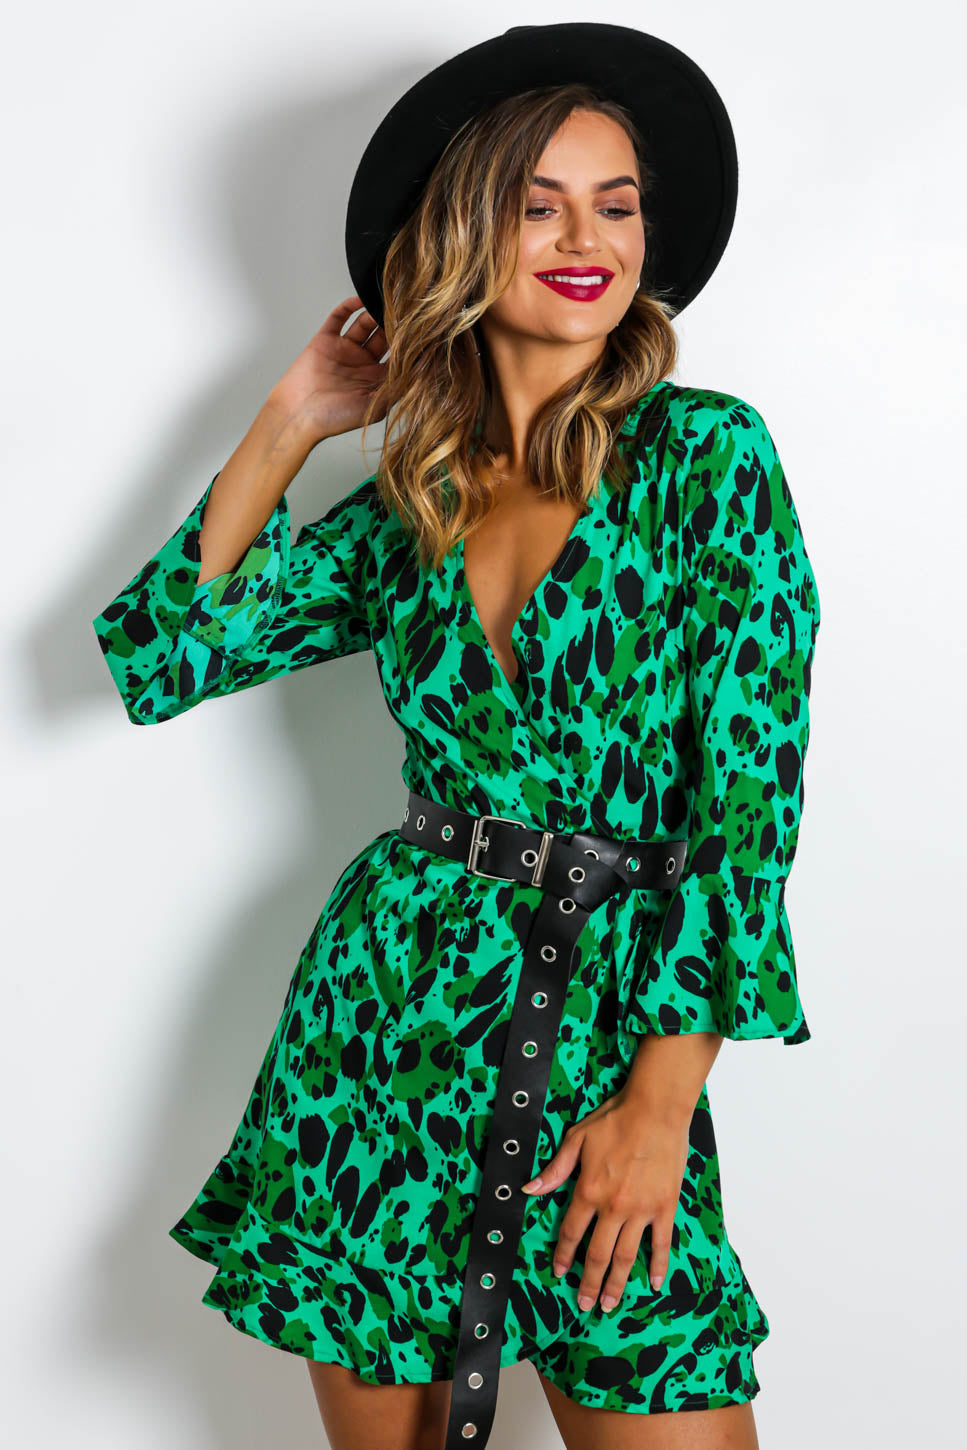 To Tie For - Wrap Dress In GREEN/LEOPARD